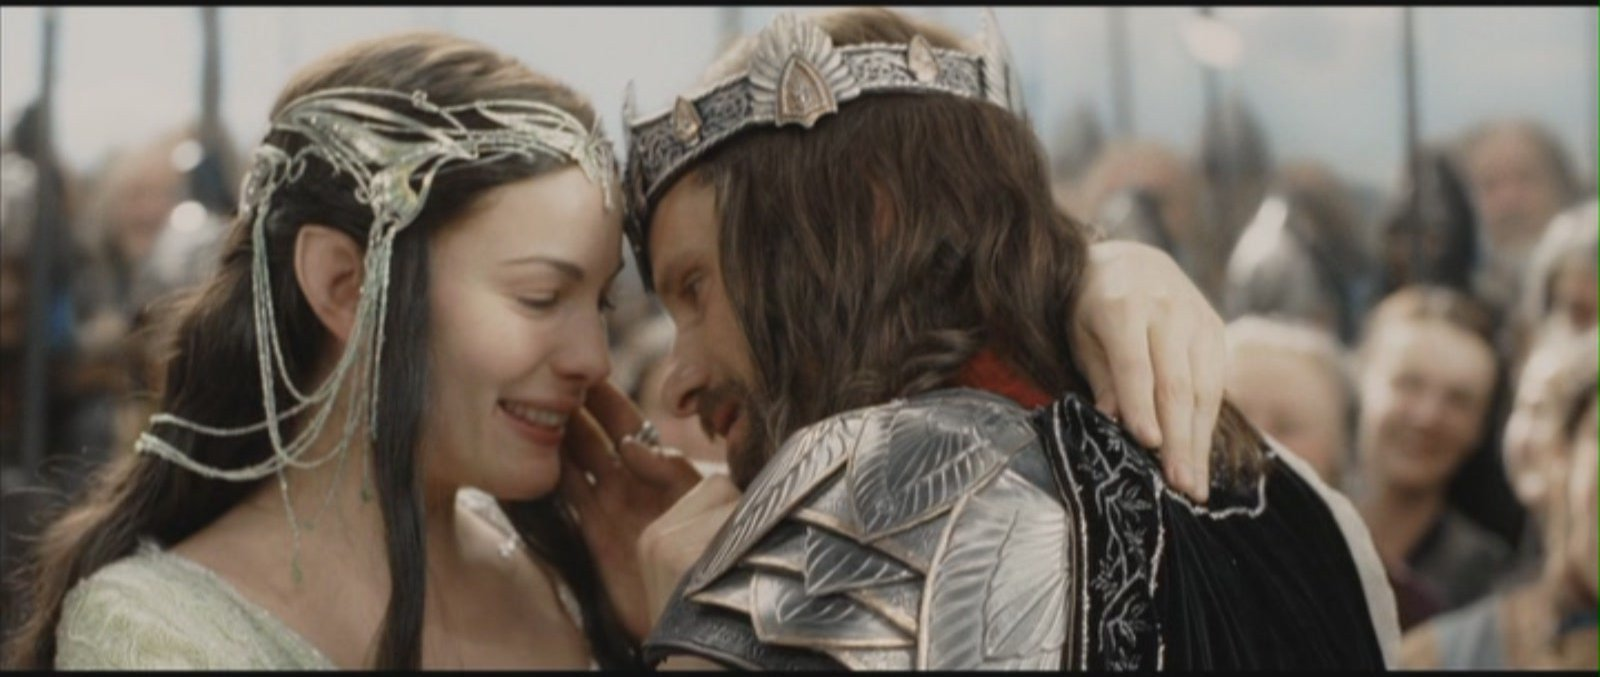 Le Seigneur des Anneaux / The Hobbit #4 Arwen-and-Aragorn-Lord-of-the-Rings-Return-of-the-King-aragorn-and-arwen-11684043-1600-677